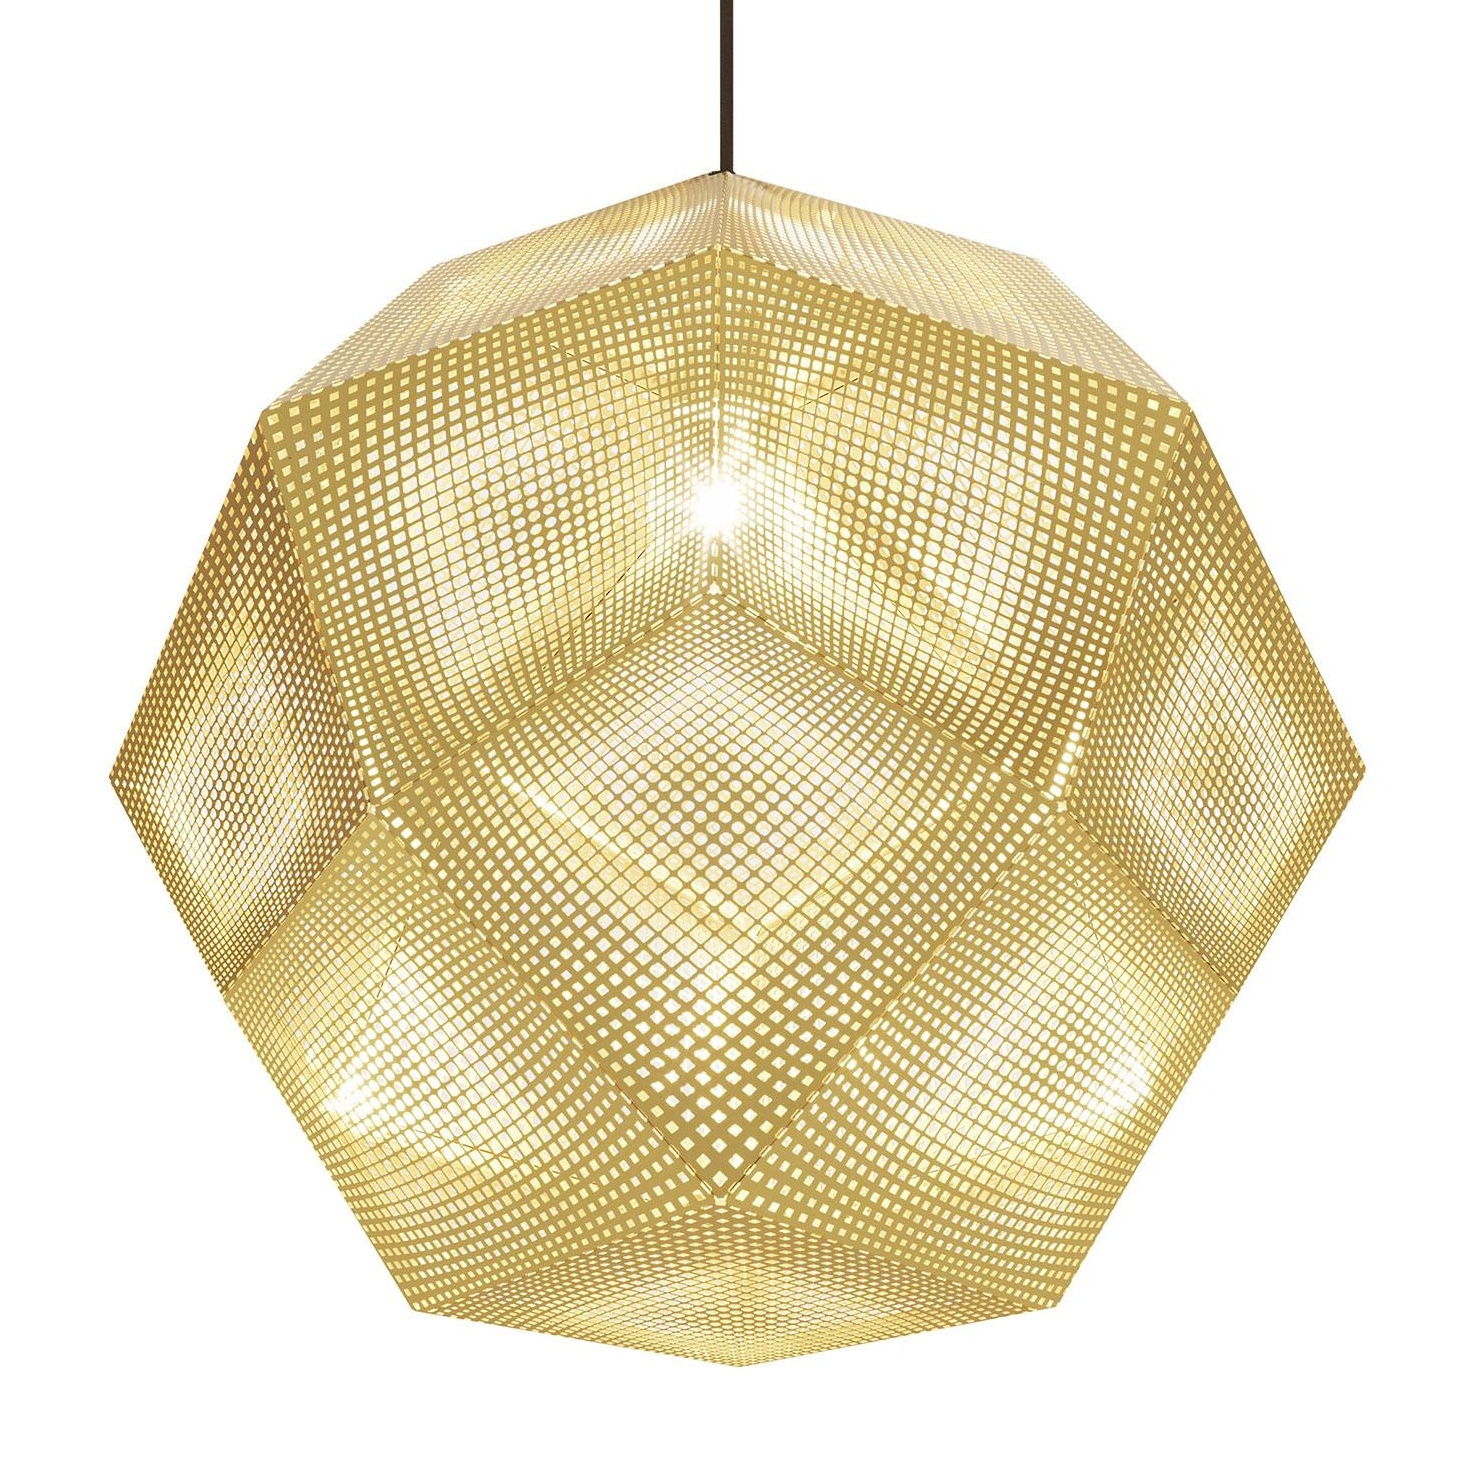 Tom Dixon - Etch Shade Suspension Lamp Ã50cm - brass